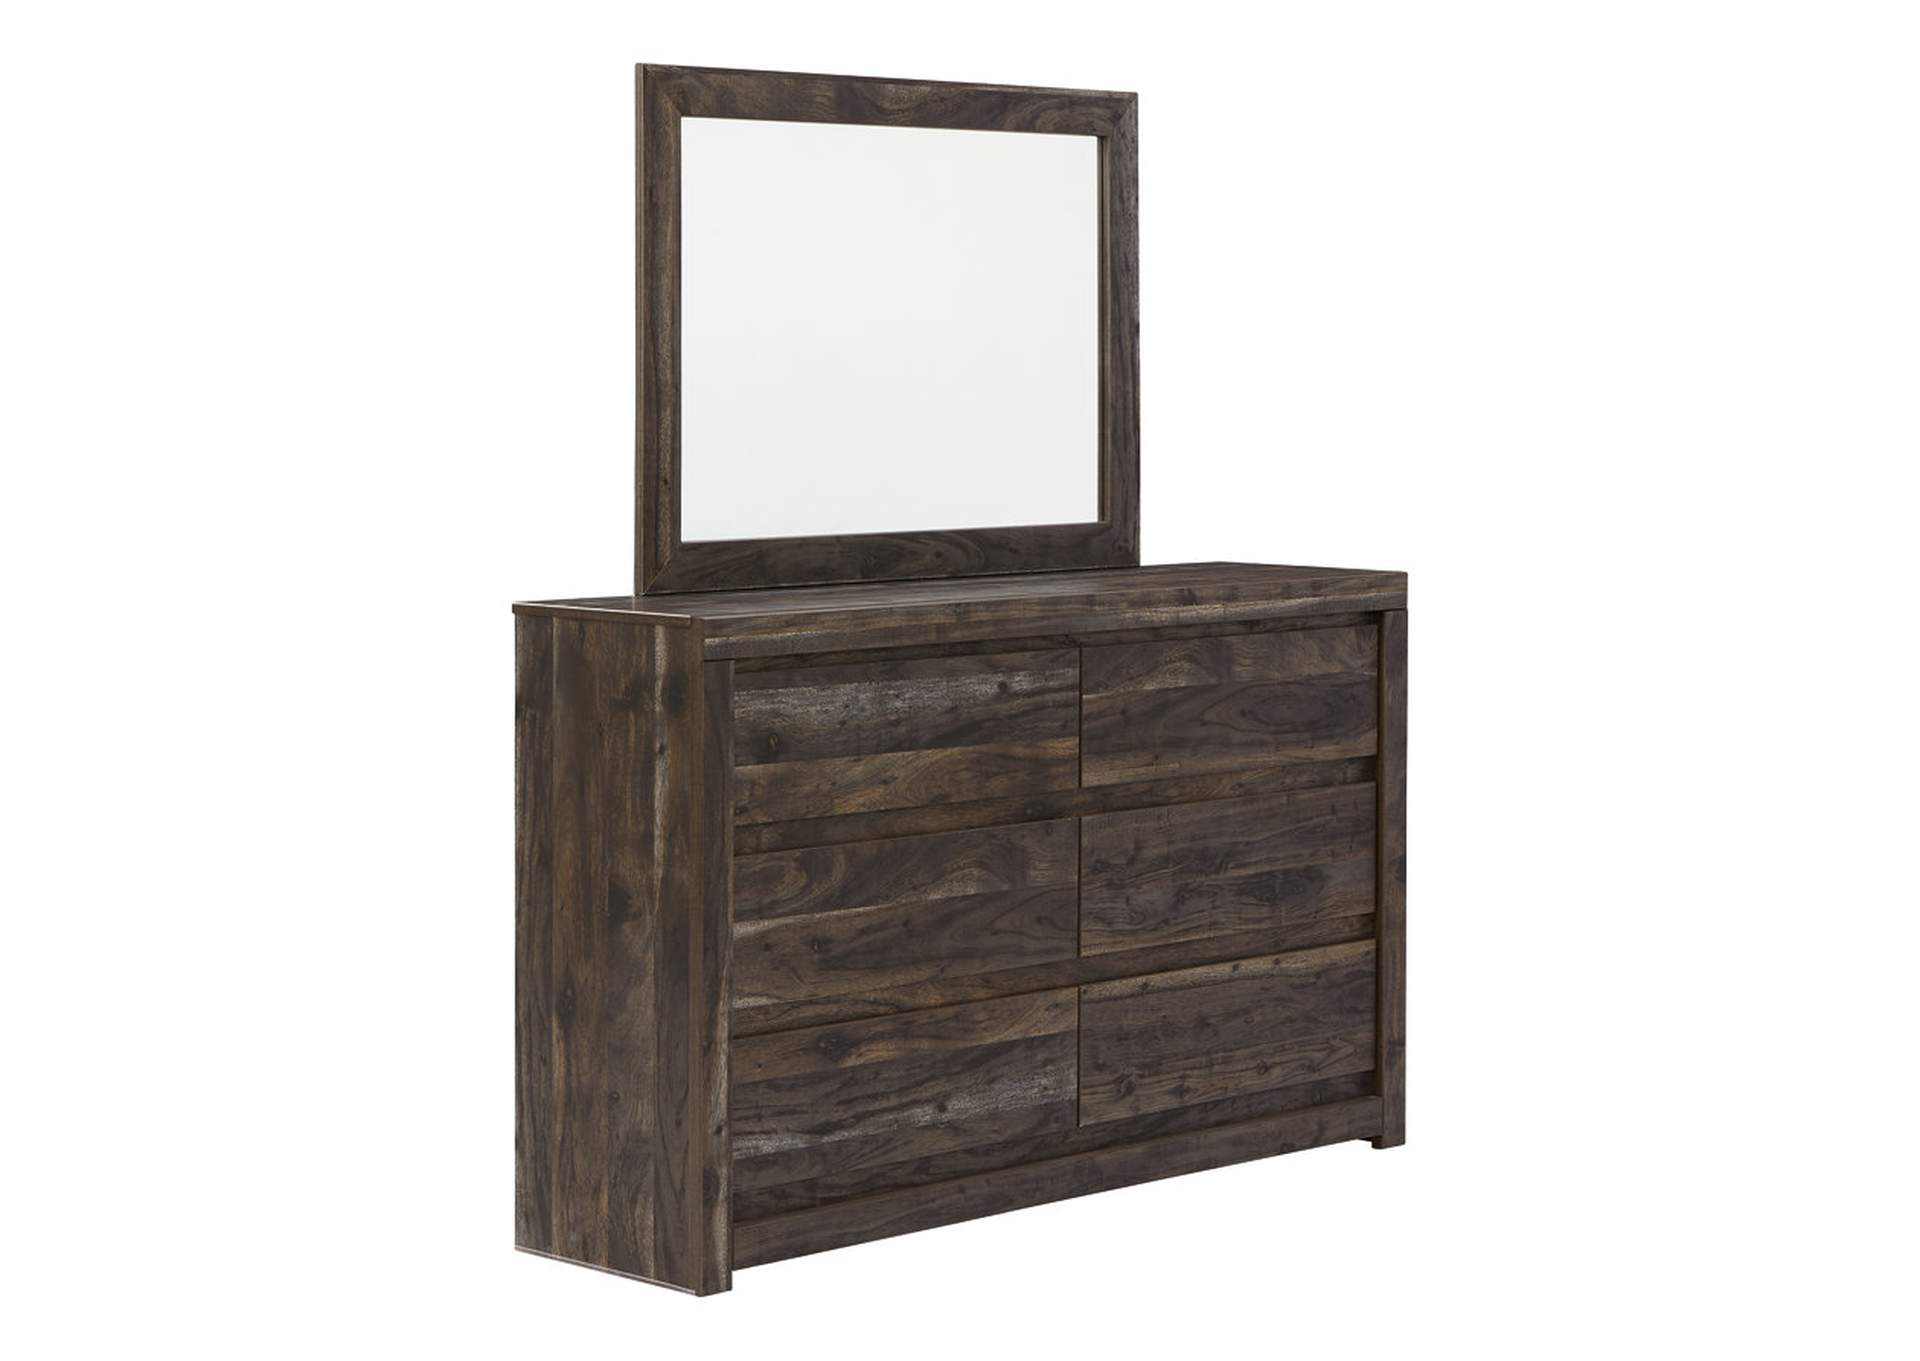 Vay Bay Bedroom Mirror,Benchcraft